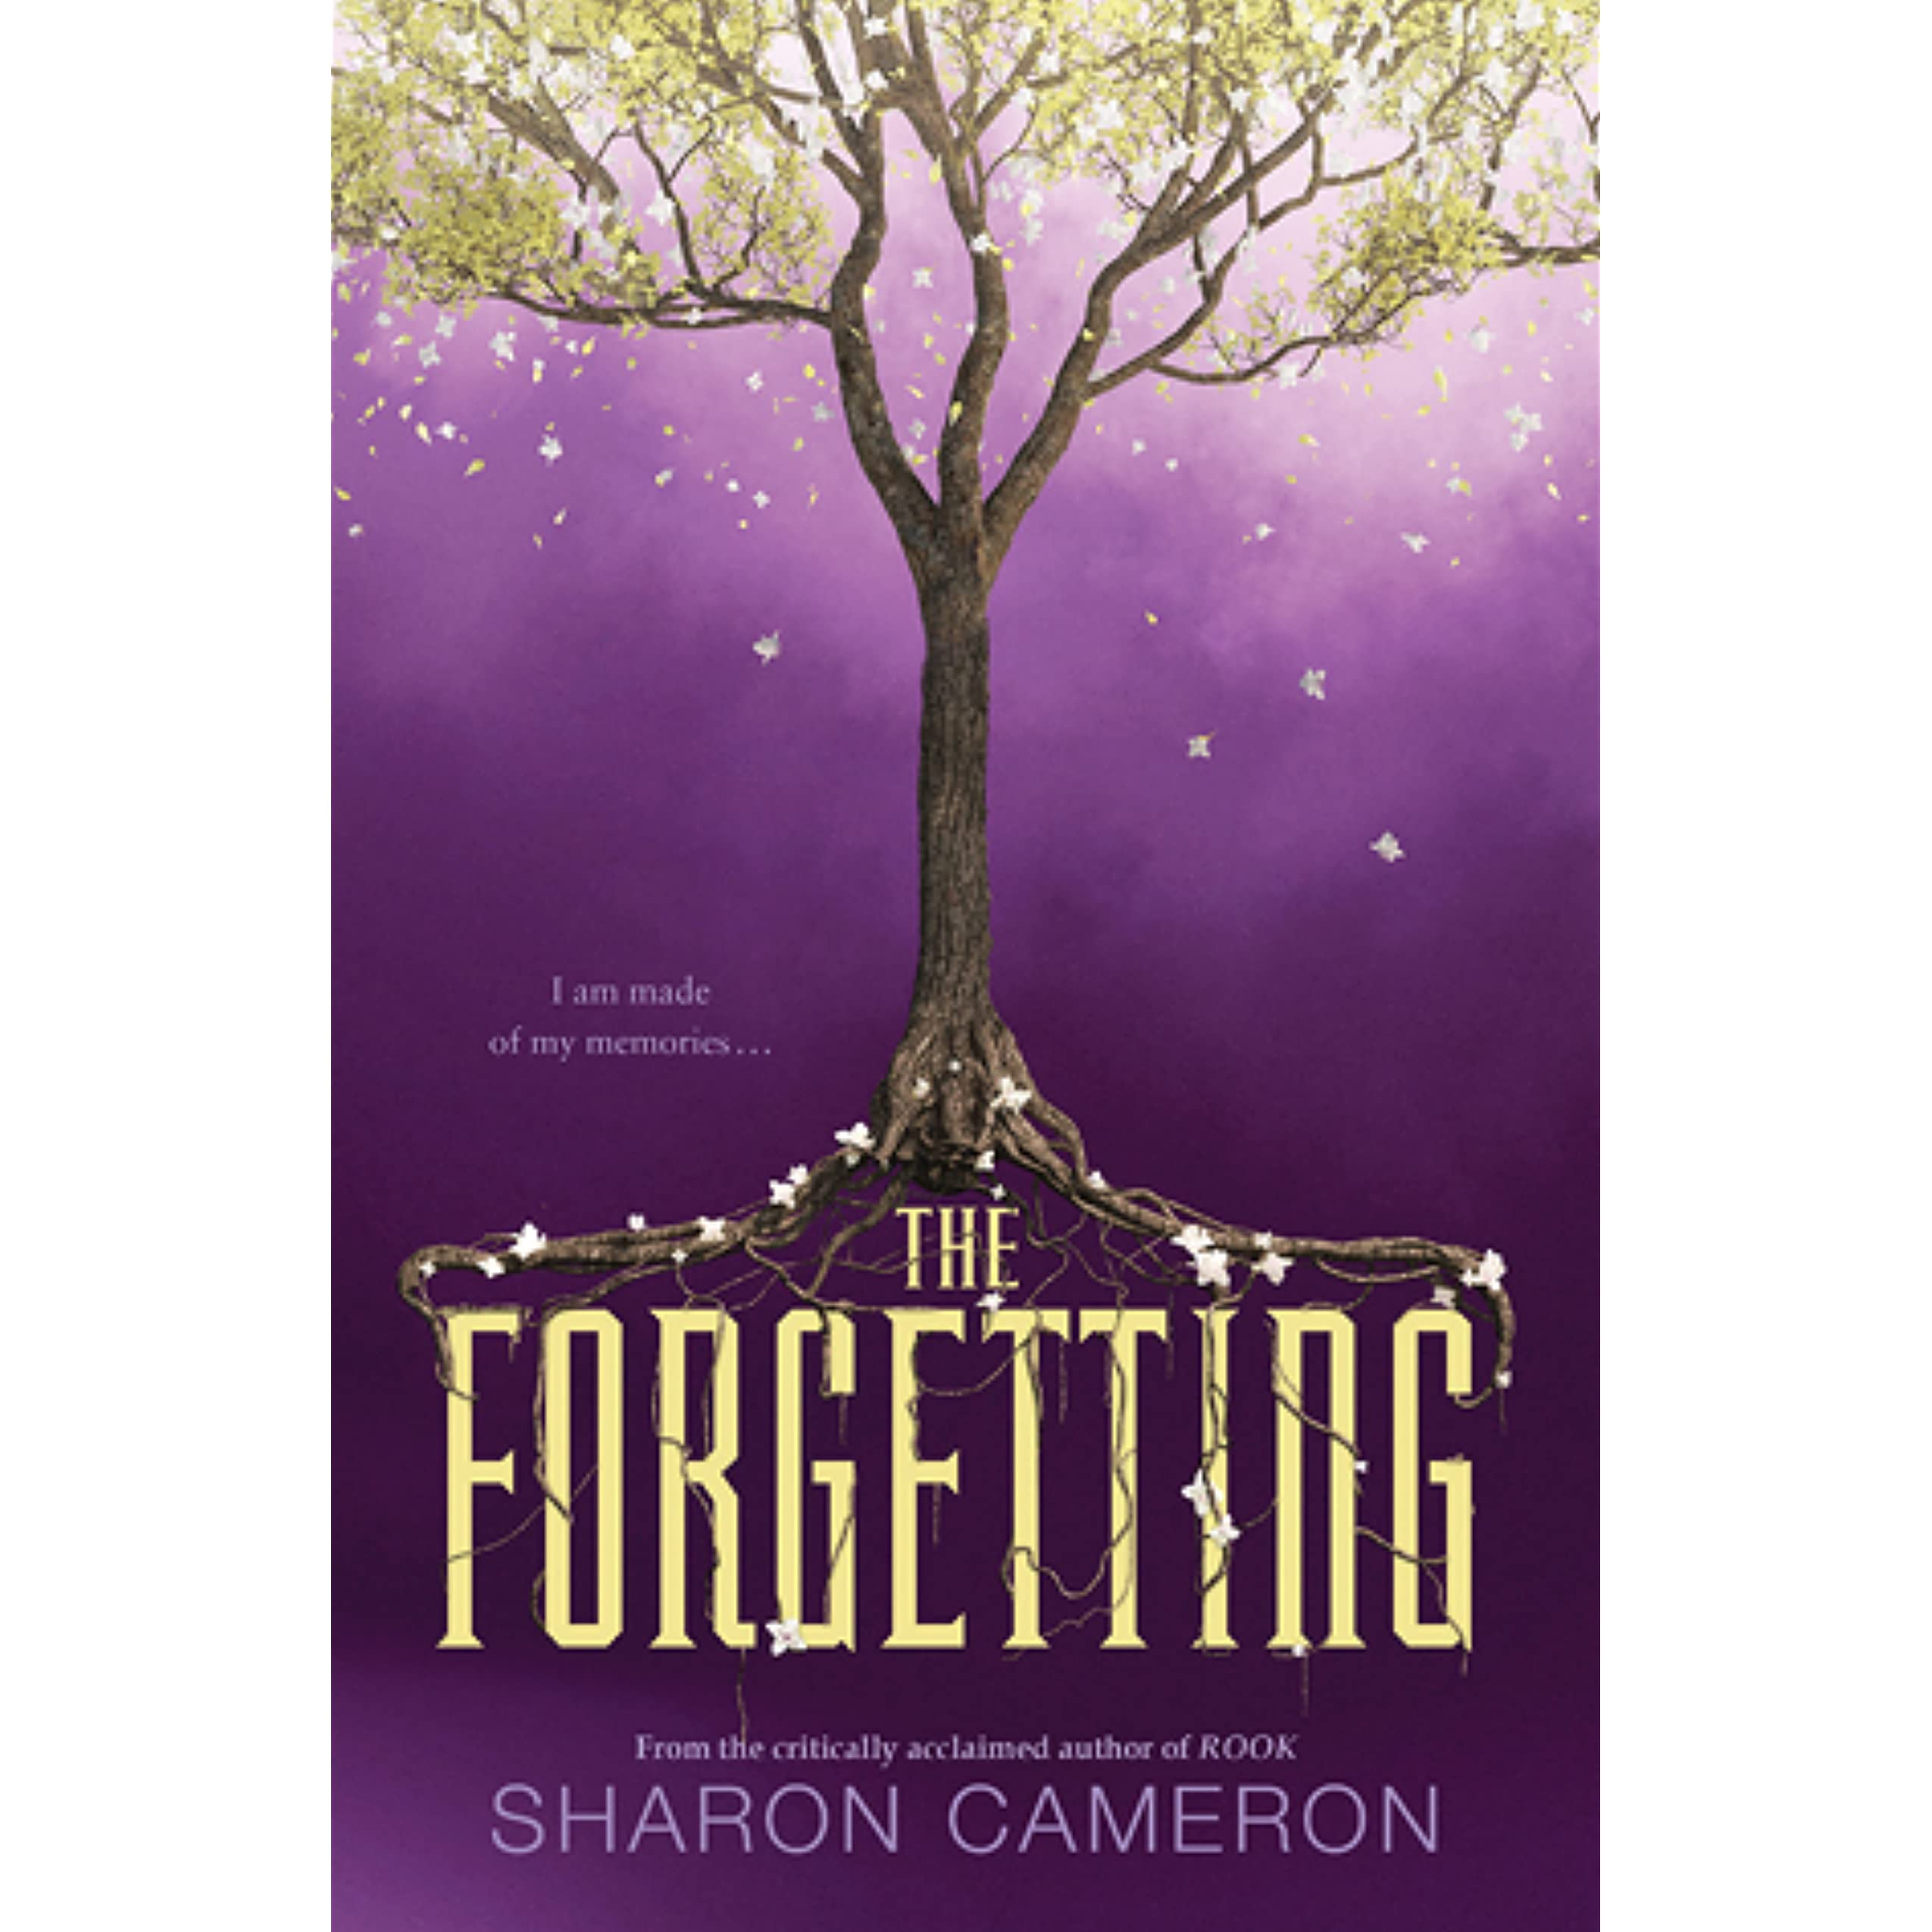 Image result for the forgetting sharon cameron